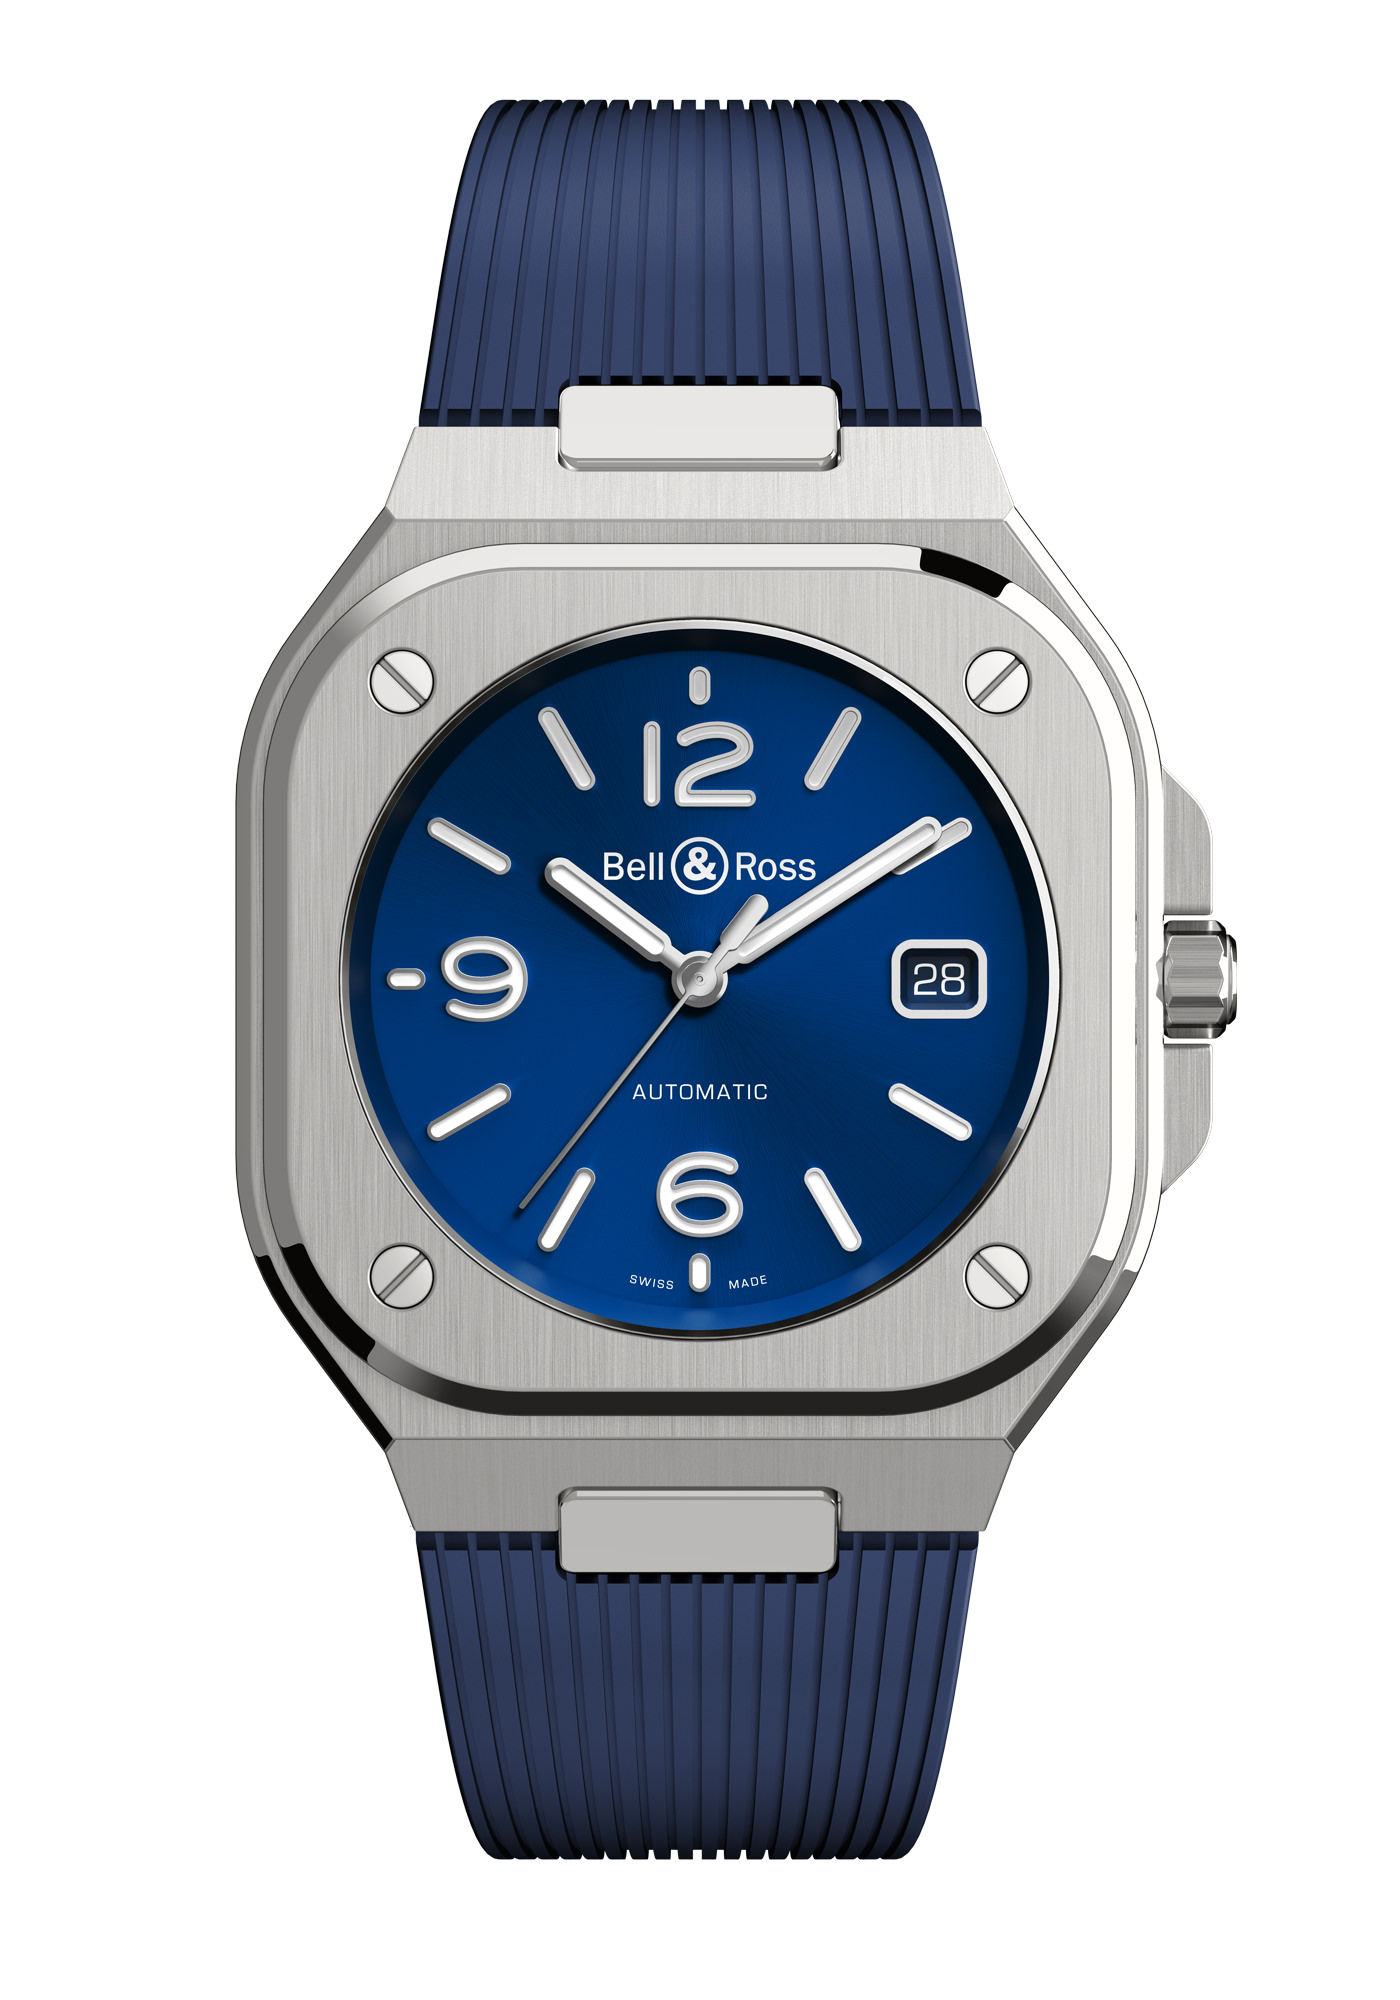 Montre Bell & Ross Nouvelle Collection BR05 Bleue Caoutchouc